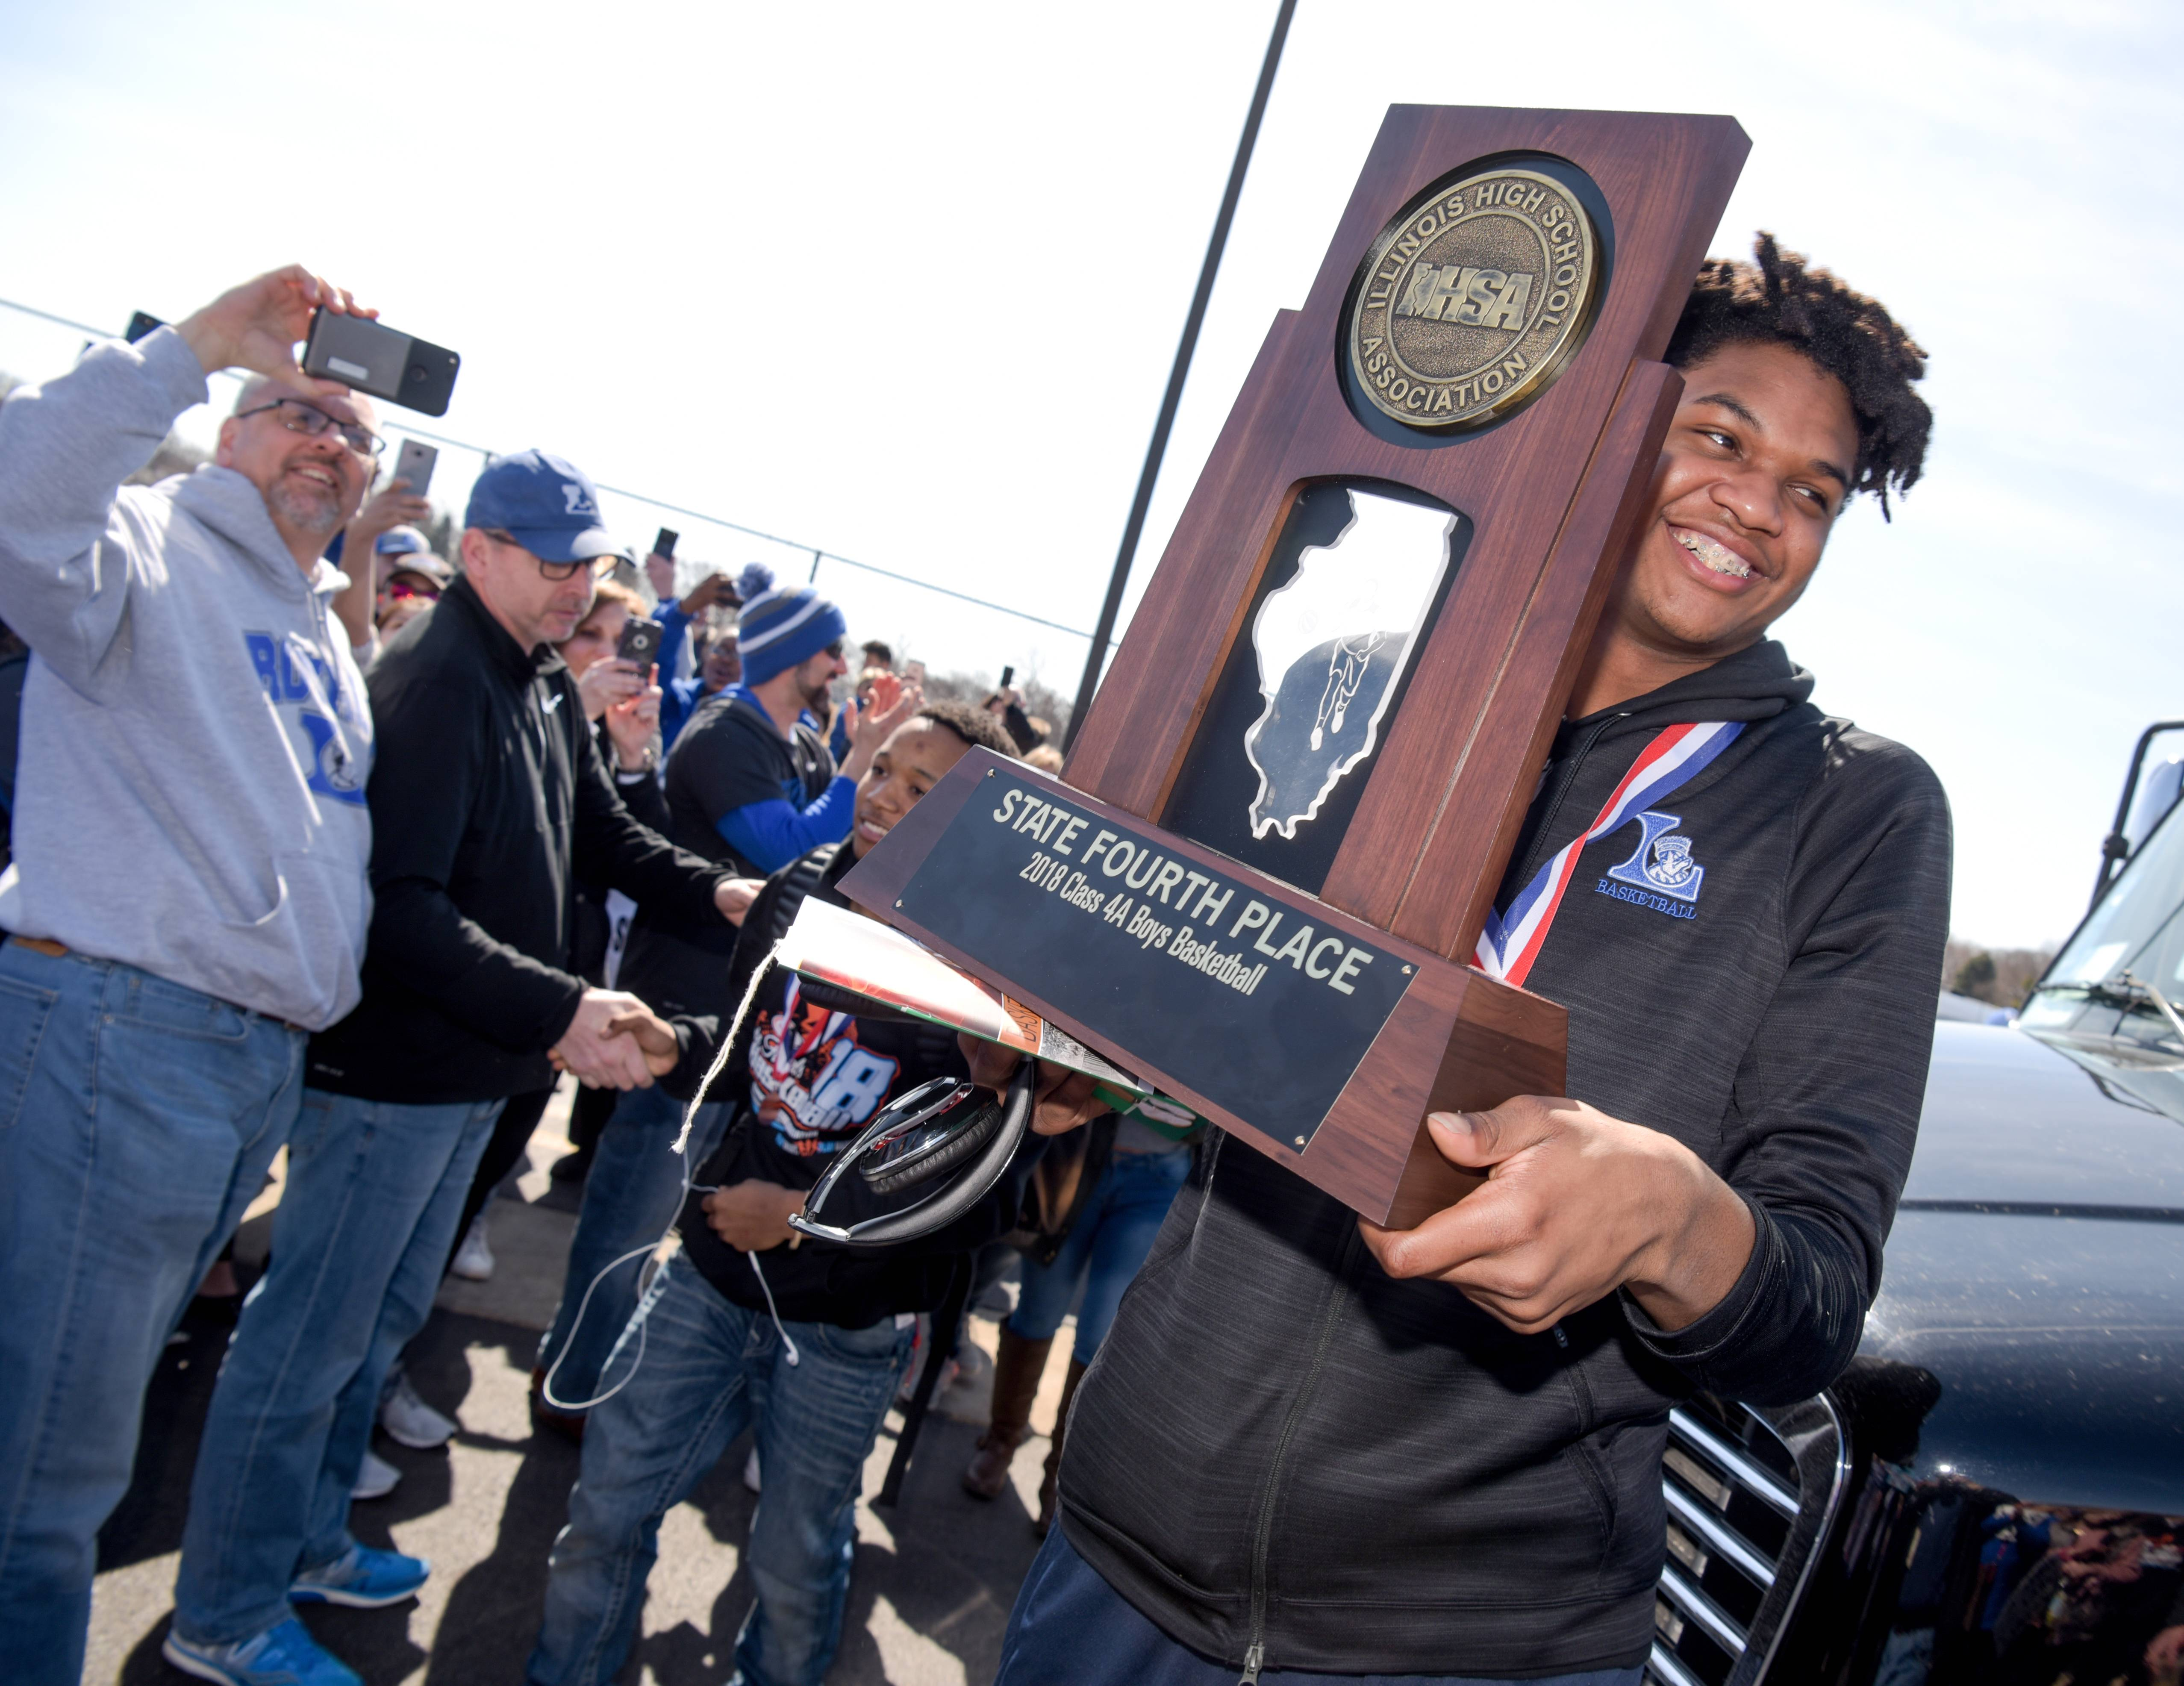 Larkin High School boys basketball player Jalen Shaw holds up the 4th place 4A Boys Basketball trophy Sunday as the team returns home to cheering fans.